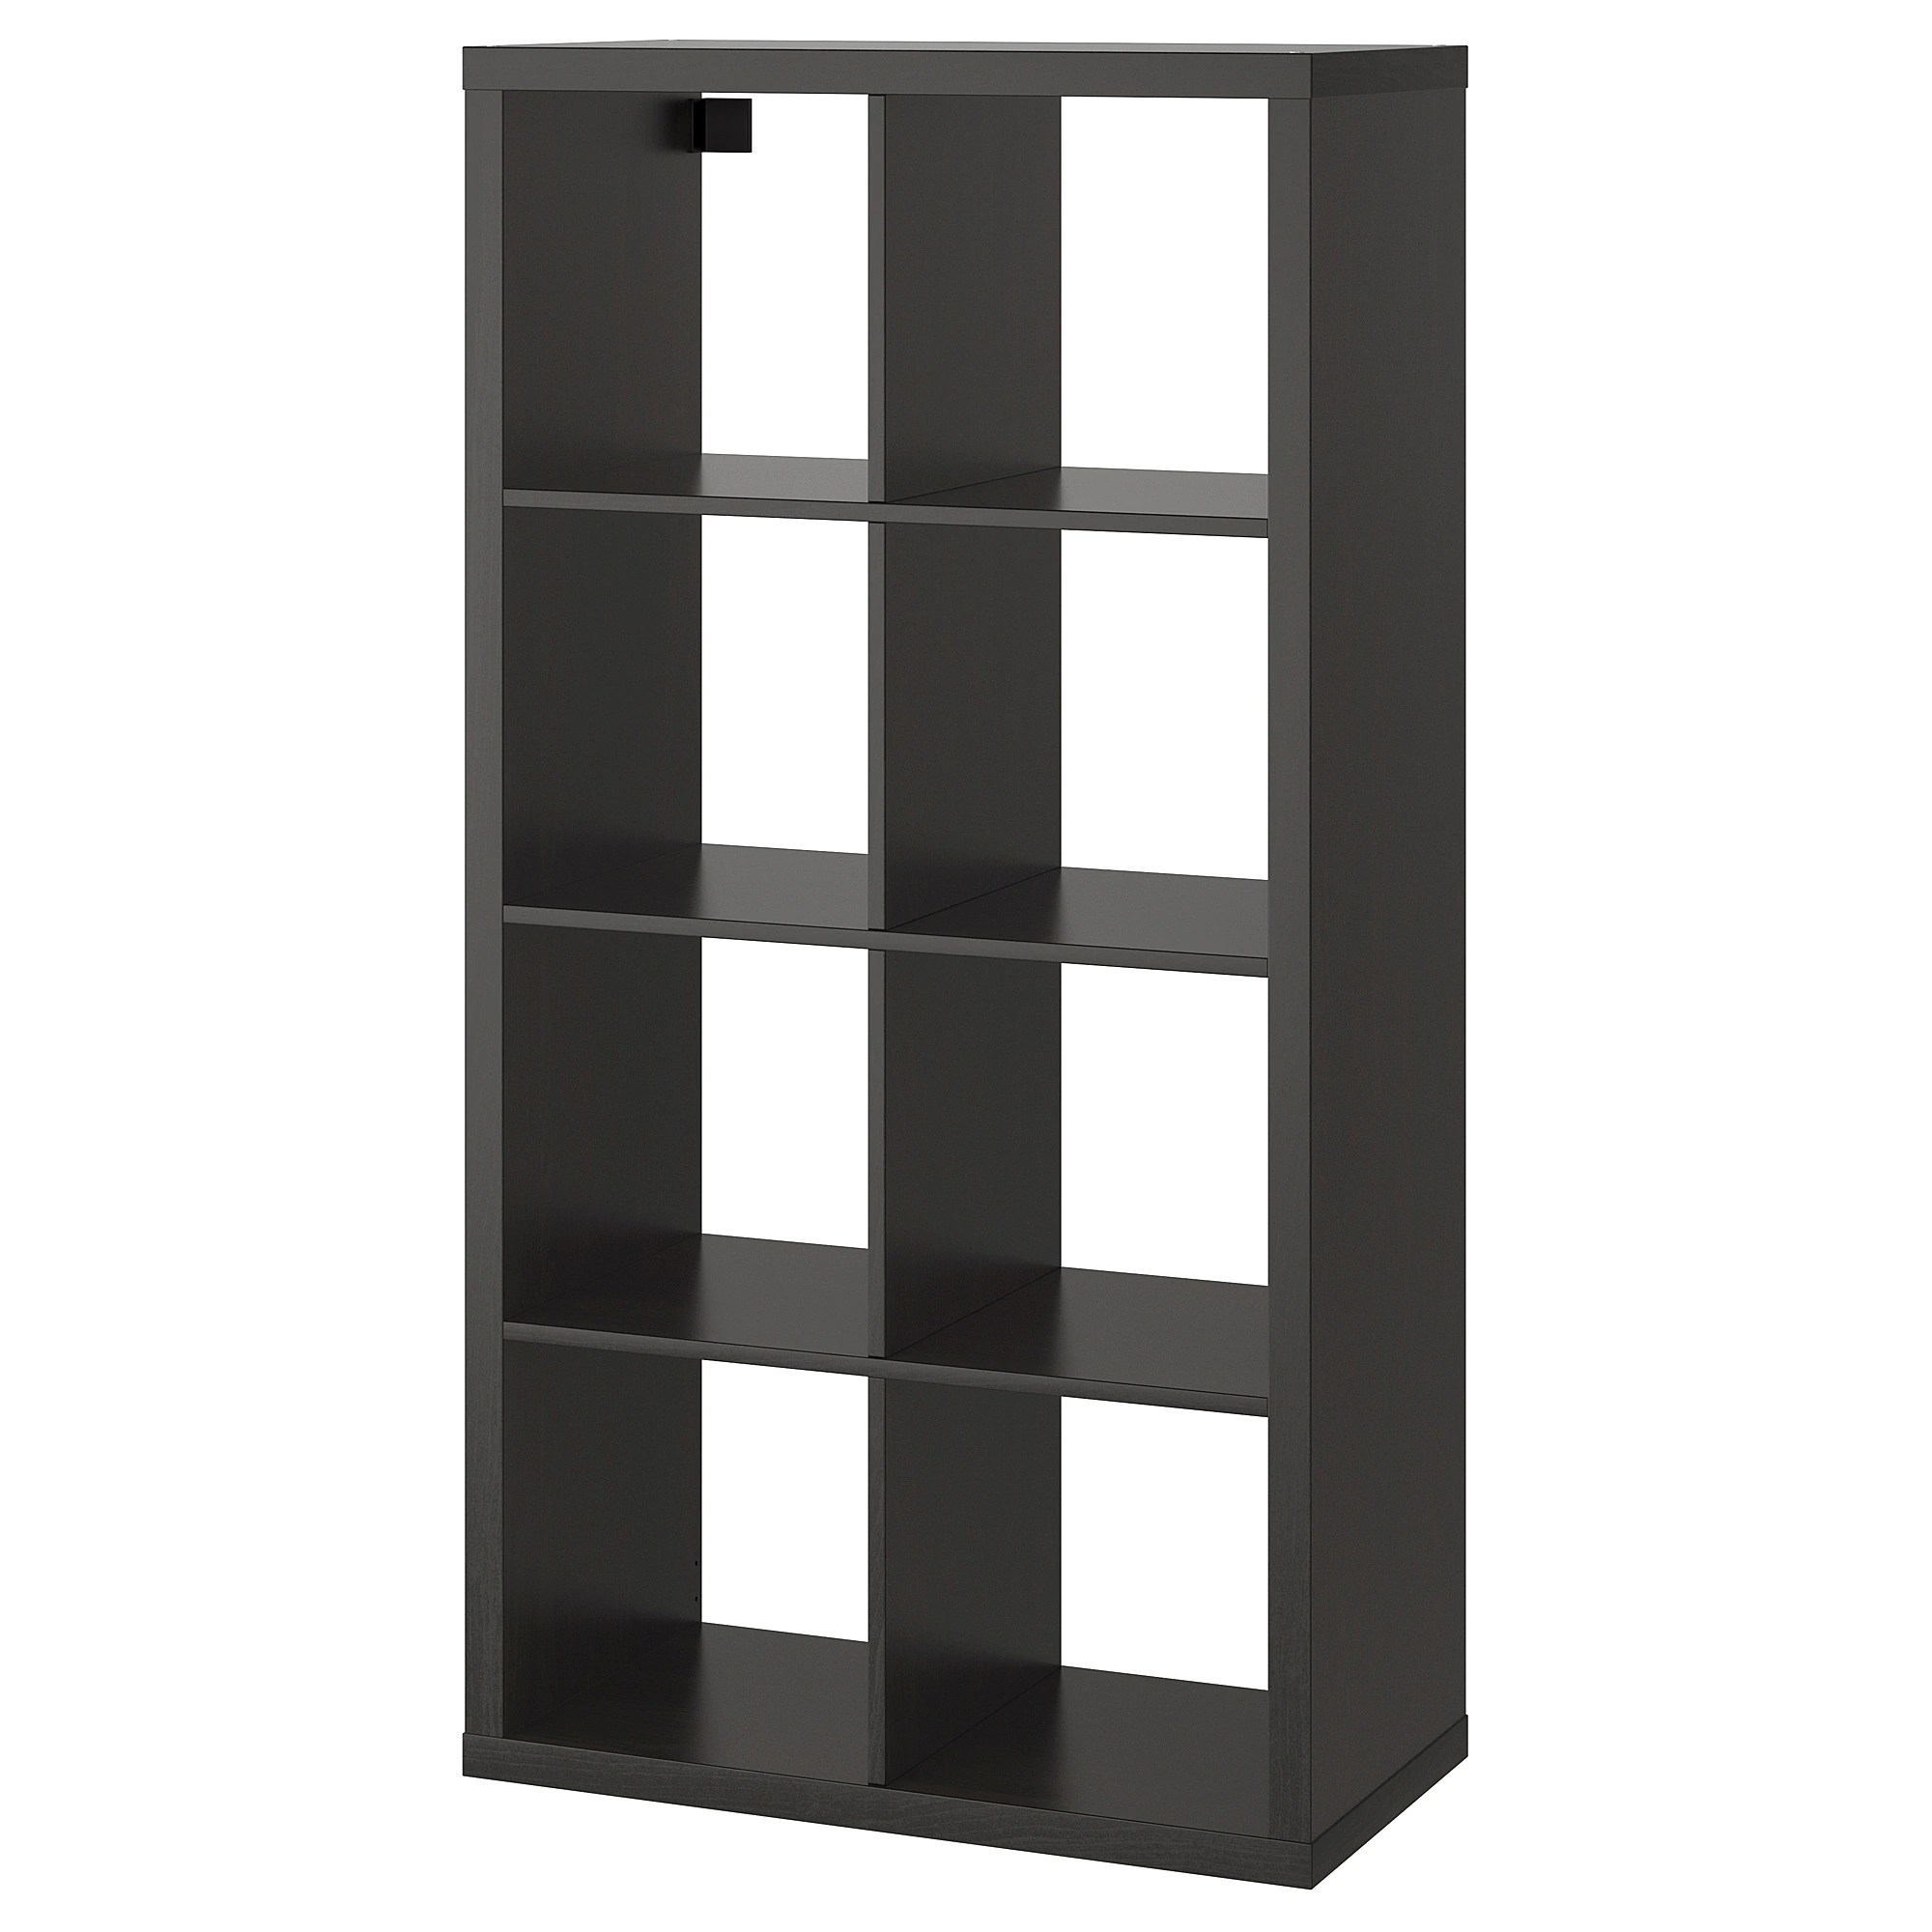 Ikea Expedit Youtube Kallax Shelf Unit Black Brown